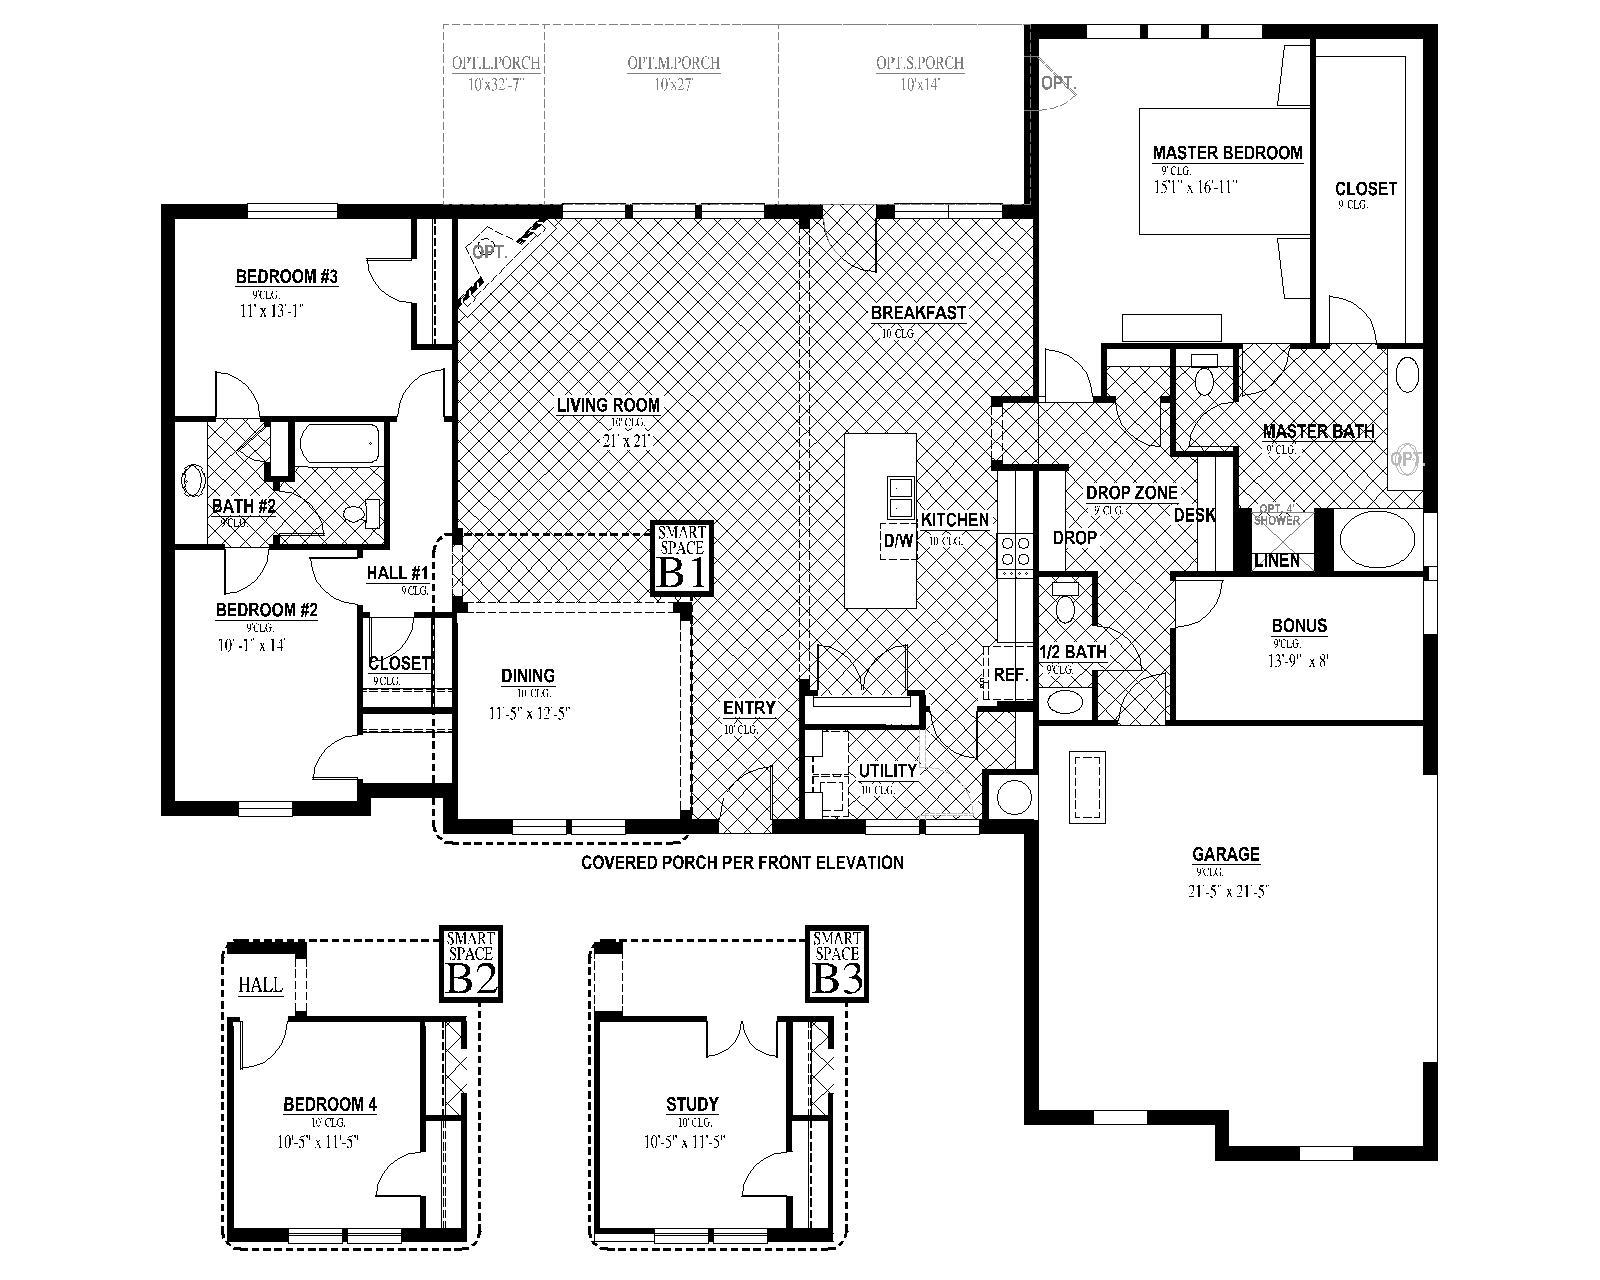 [FLEX PLAN] Hampton II Floorplan